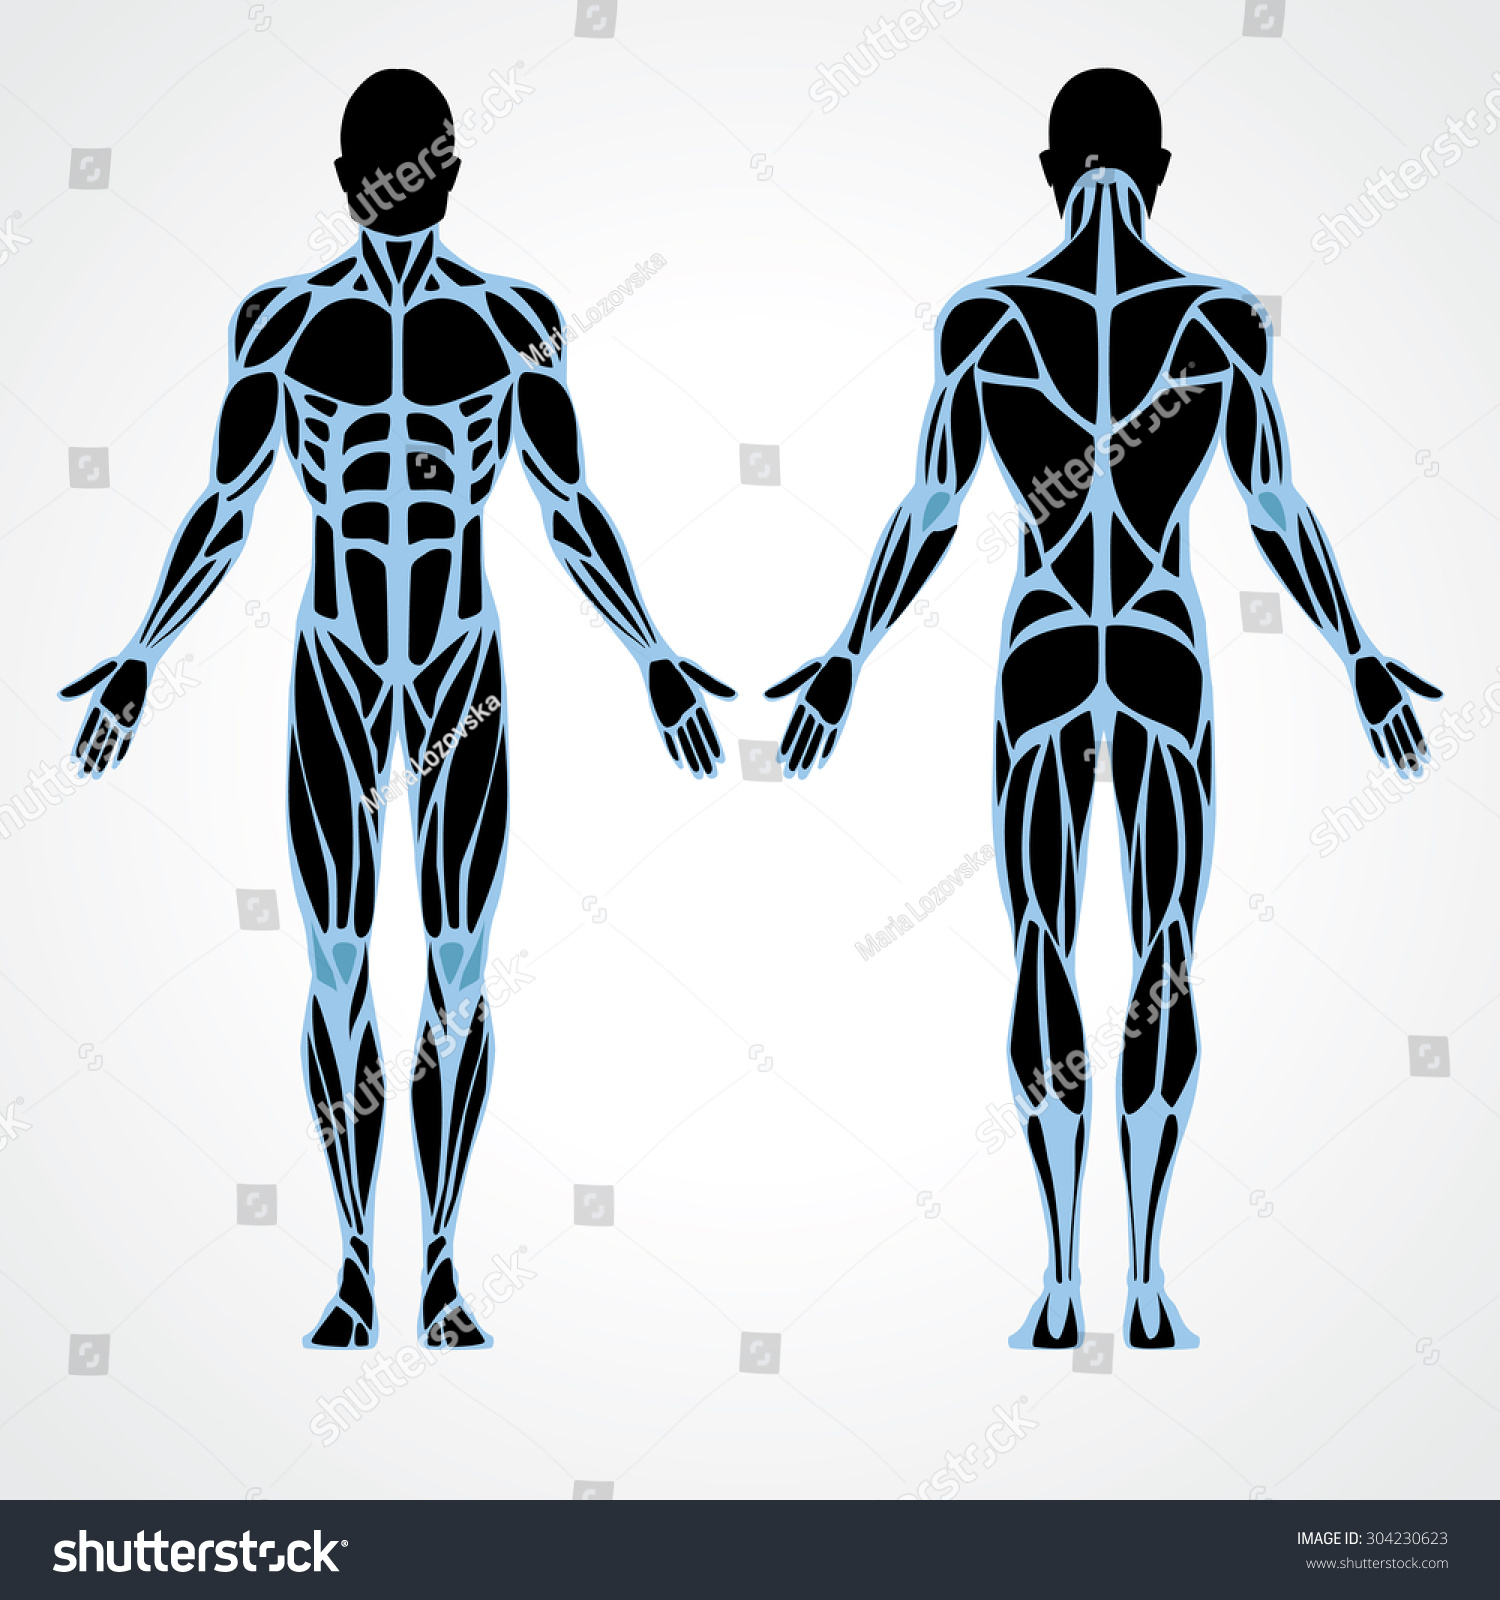 Arteries In The Human Body Anatomy Stock Vector Manual Guide